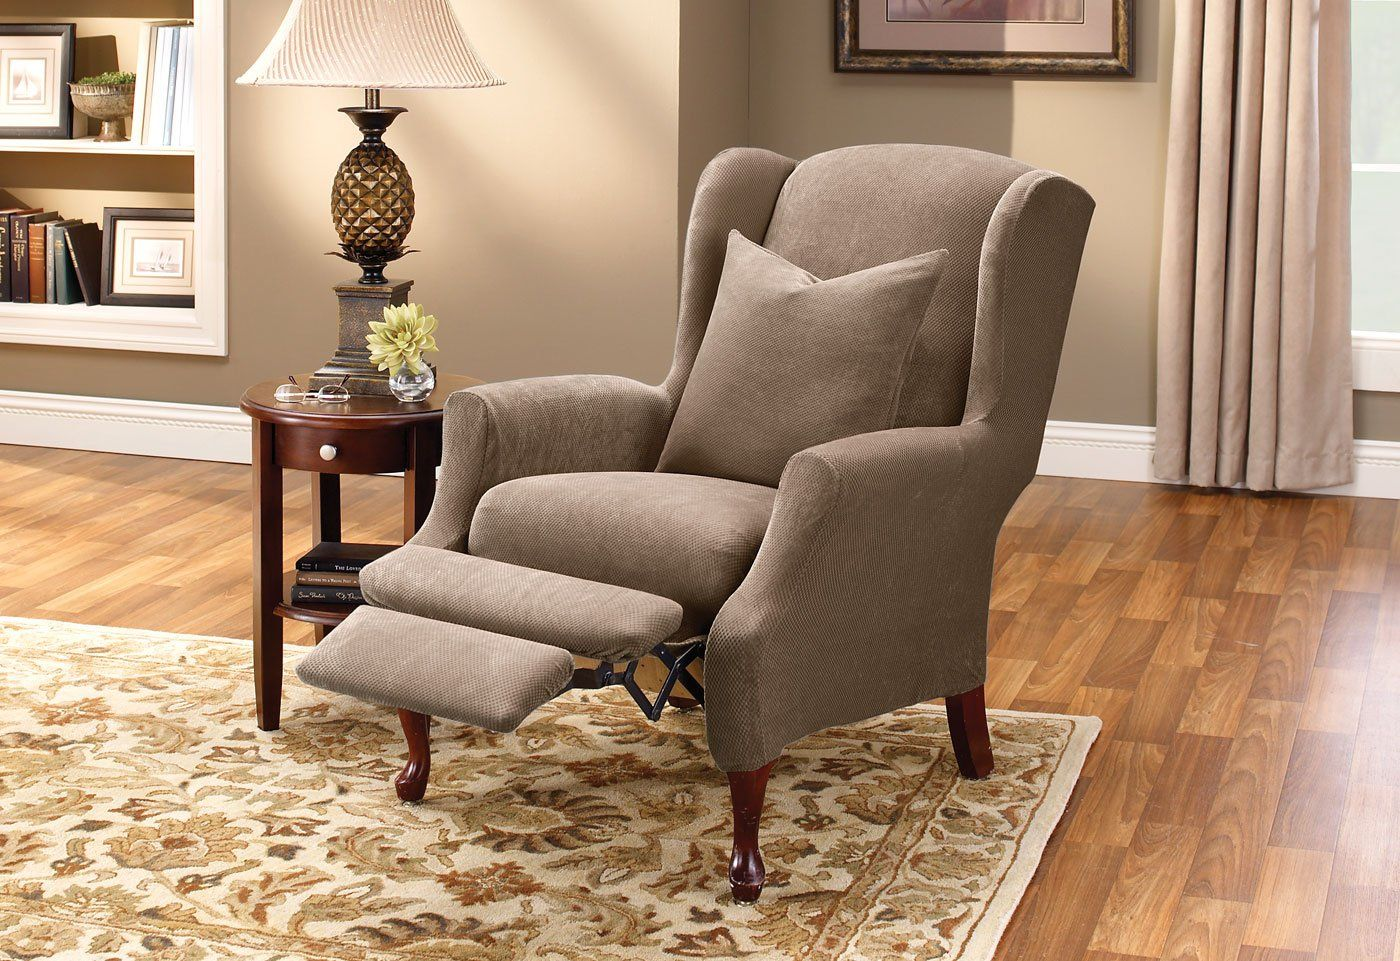 Stretch Pique Two Piece Wing Recliner Slipcover Form Fit Machine Washable With Images Slipcovers For Chairs Recliner Cover Recliner Slipcover